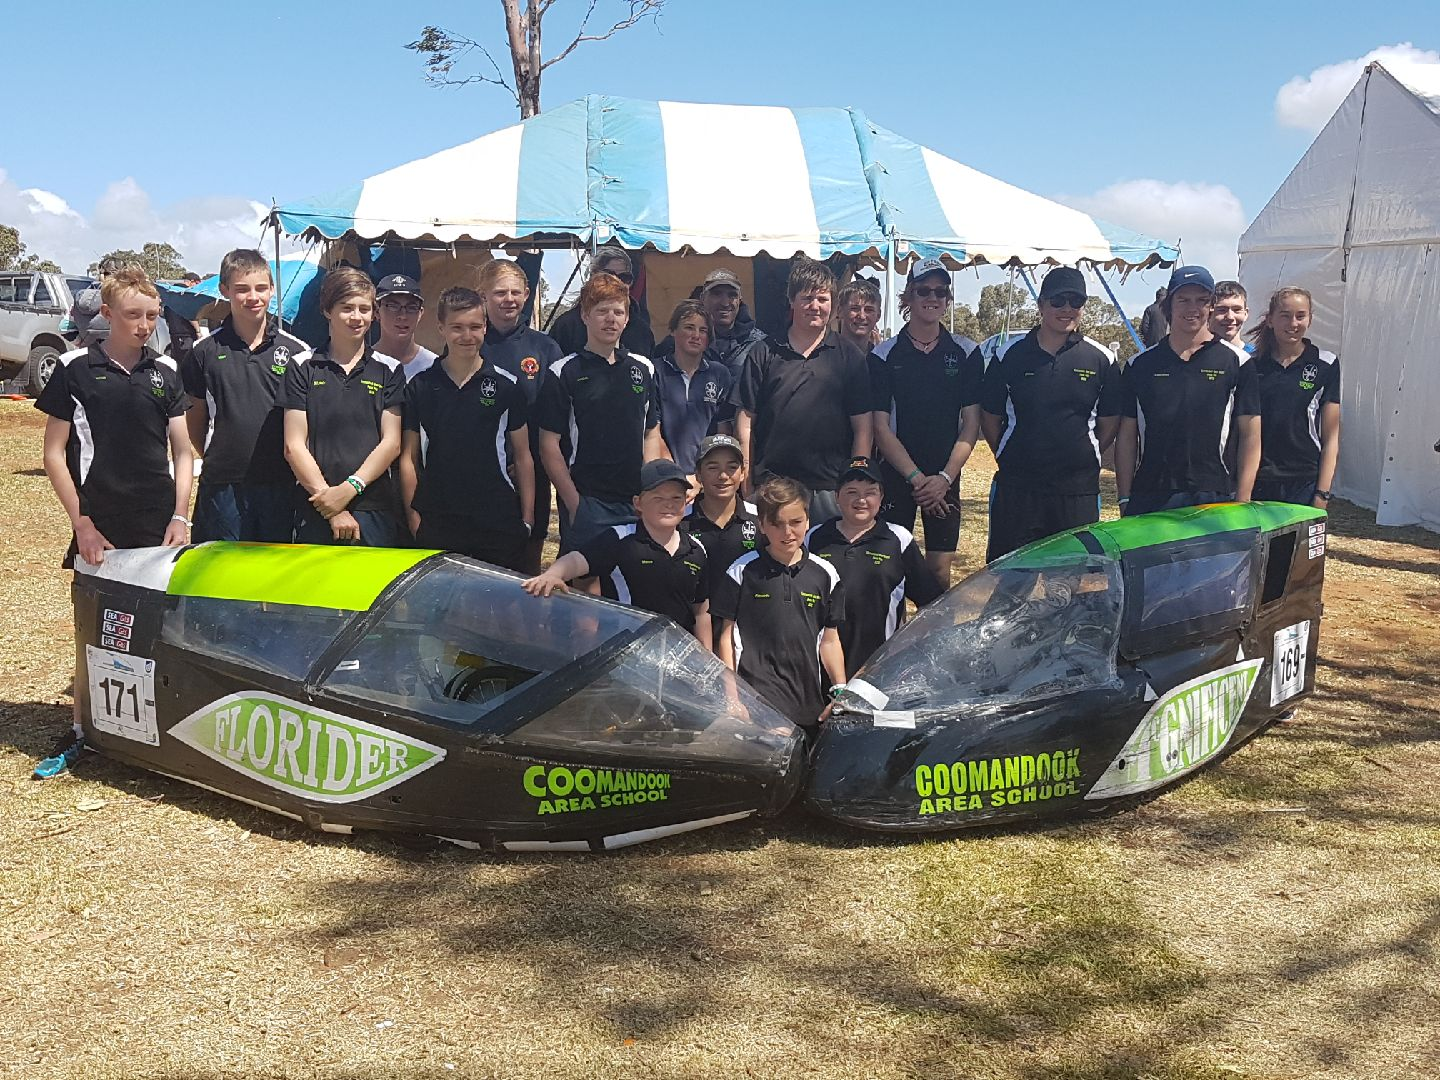 Coomandook Area School Pedal Prix Team